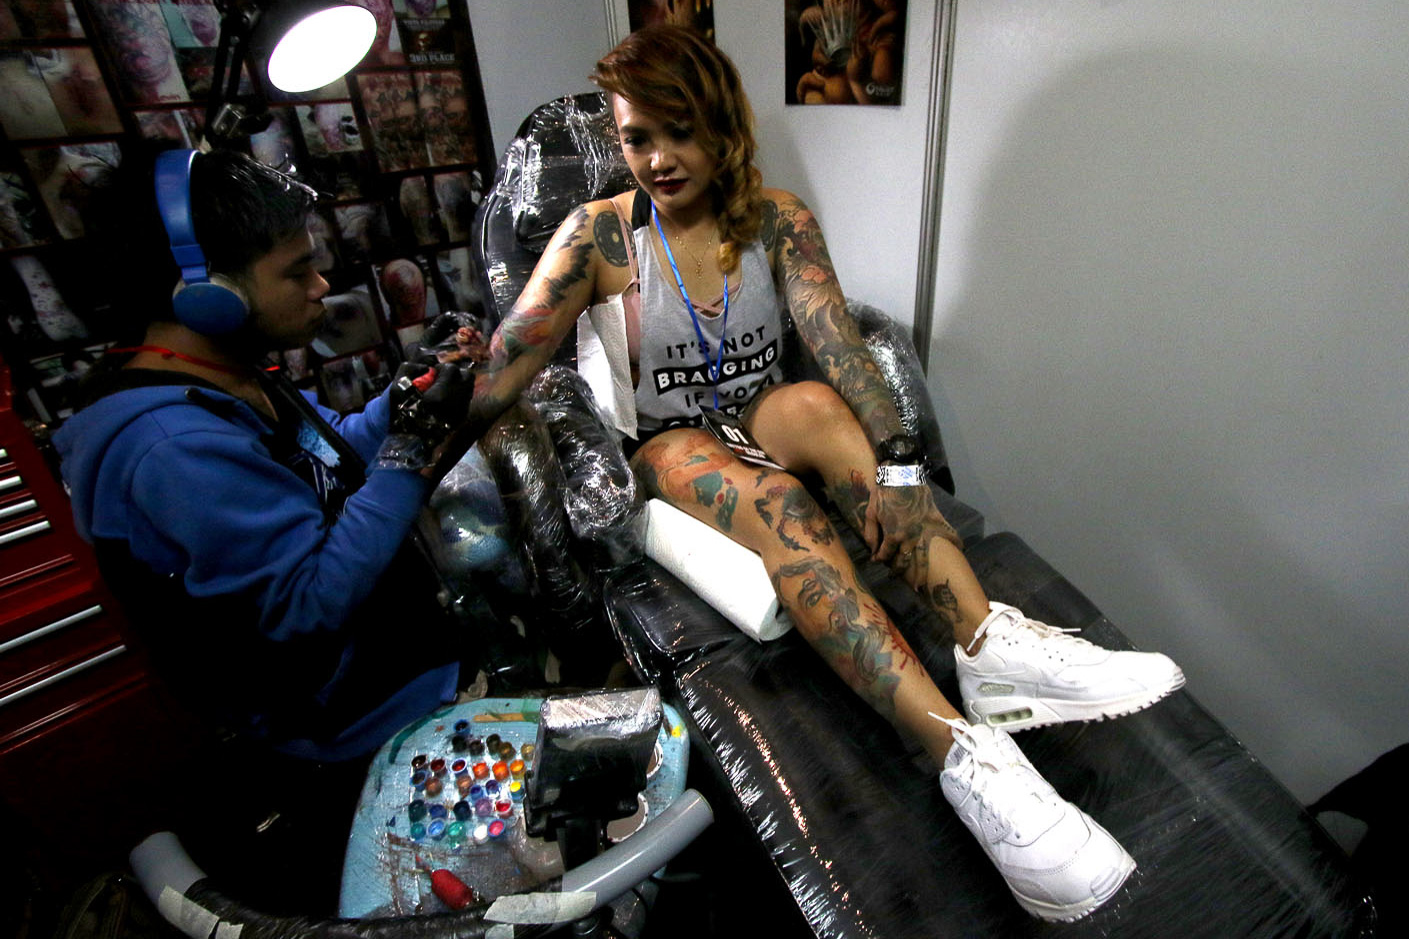 In photos dutdutan tattoo festival 2017 for Tattoo photos 2017